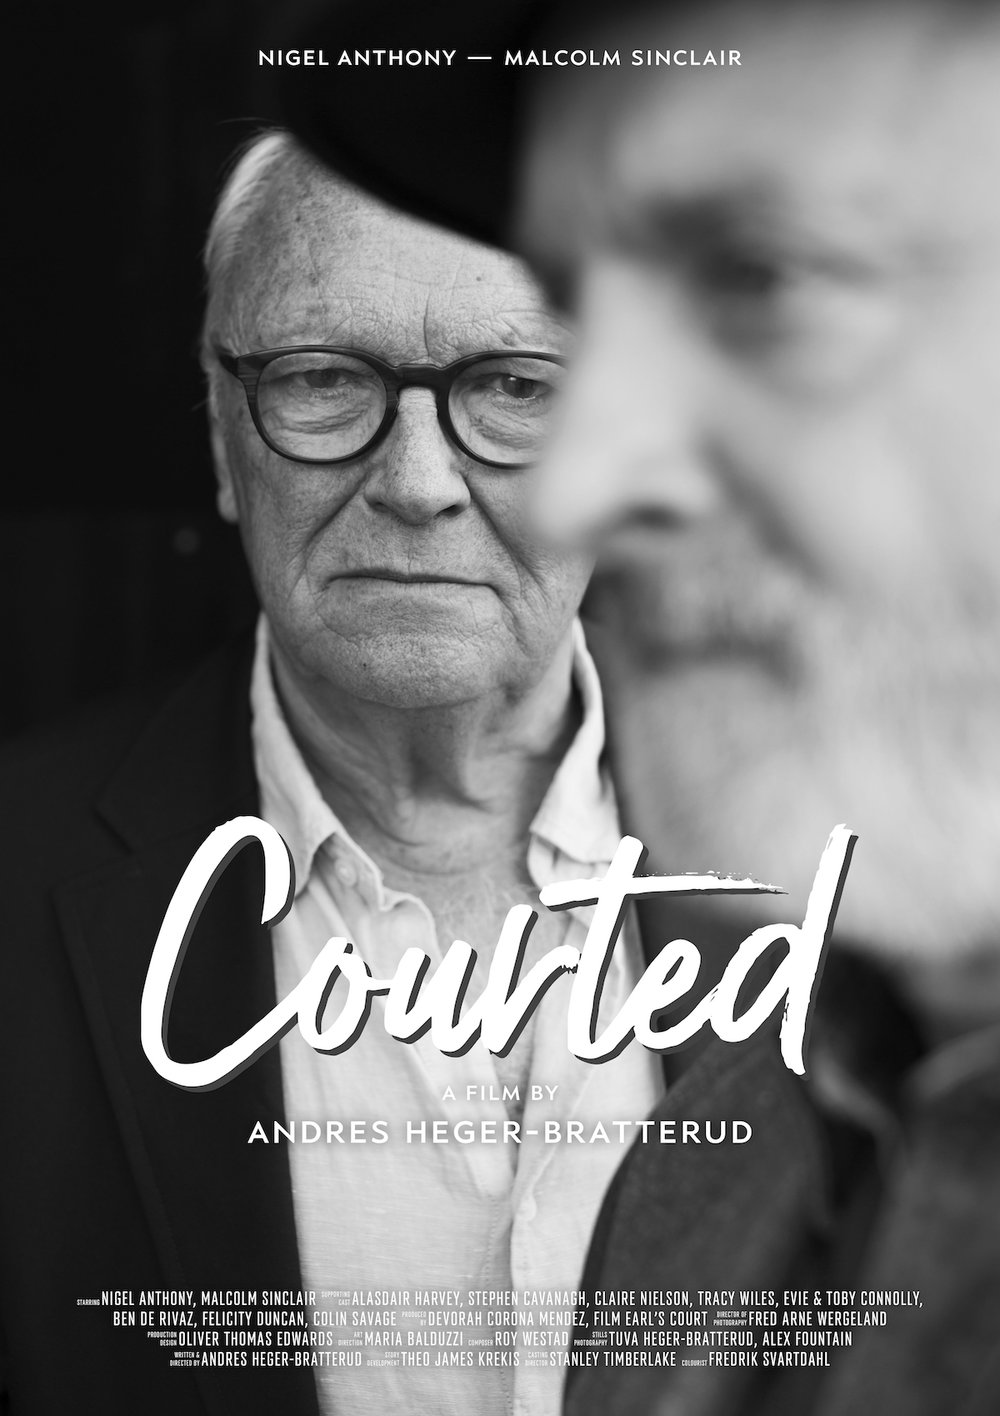 October 2017 - First poster for short film COURTED directed by Andres Heger-Bratterud premiering at The Earls Court Film Festival on 27th October.